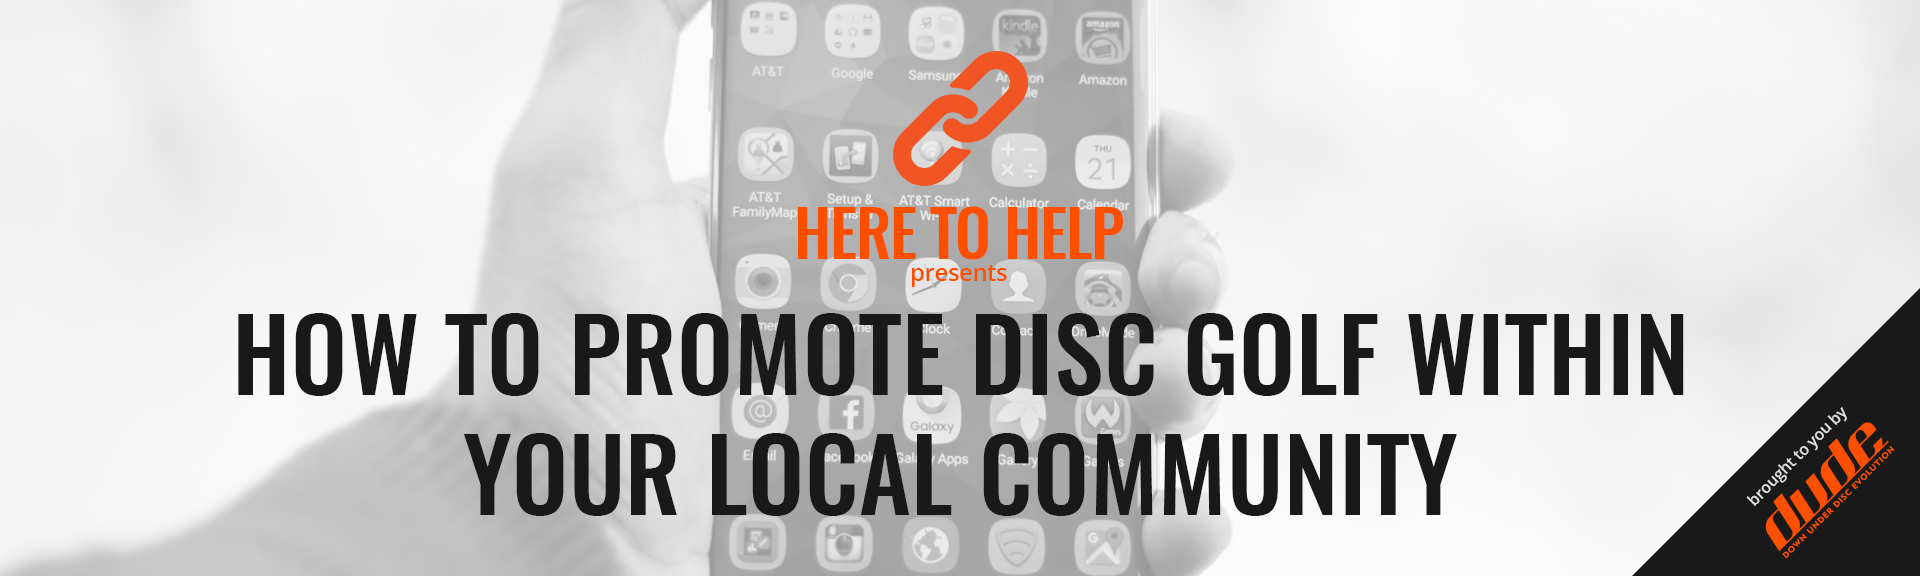 Here To Help -How To Promote Disc Golf Within Your Local Community Disc Golf, Community, Facebook, Instagram, Internet